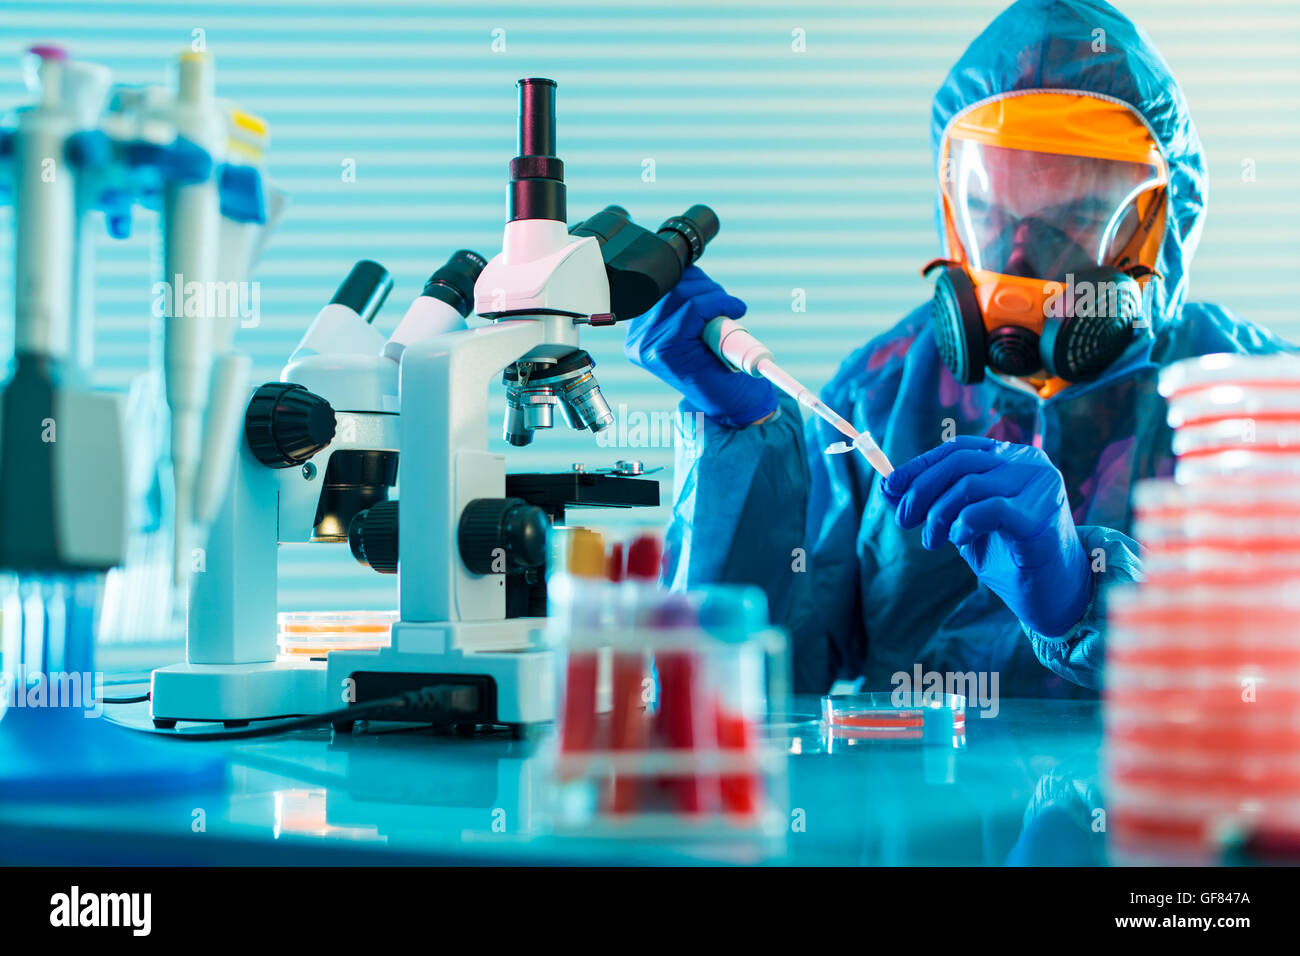 Detection of the pathogen coronavirus (Coronaviridae, Middle East Respiratory Syndrome) infection in the microbiology - Stock Image